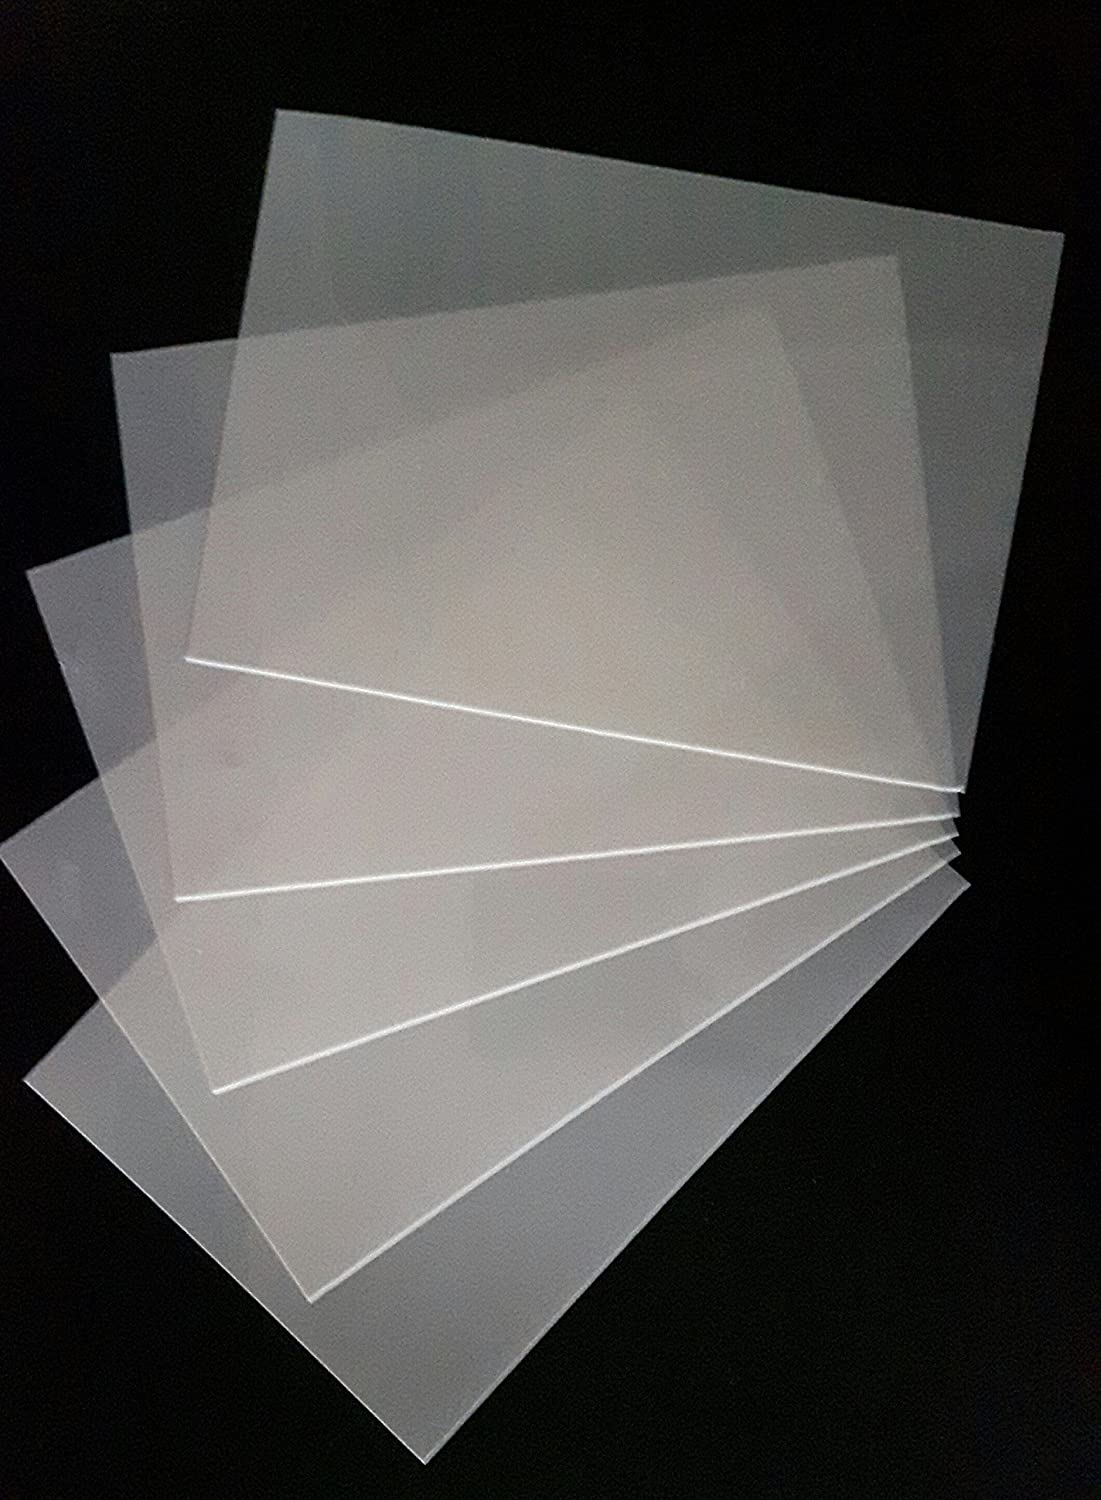 20 x A4 Sheets Of Self Adhesive Craft Vinyl 20/% Off